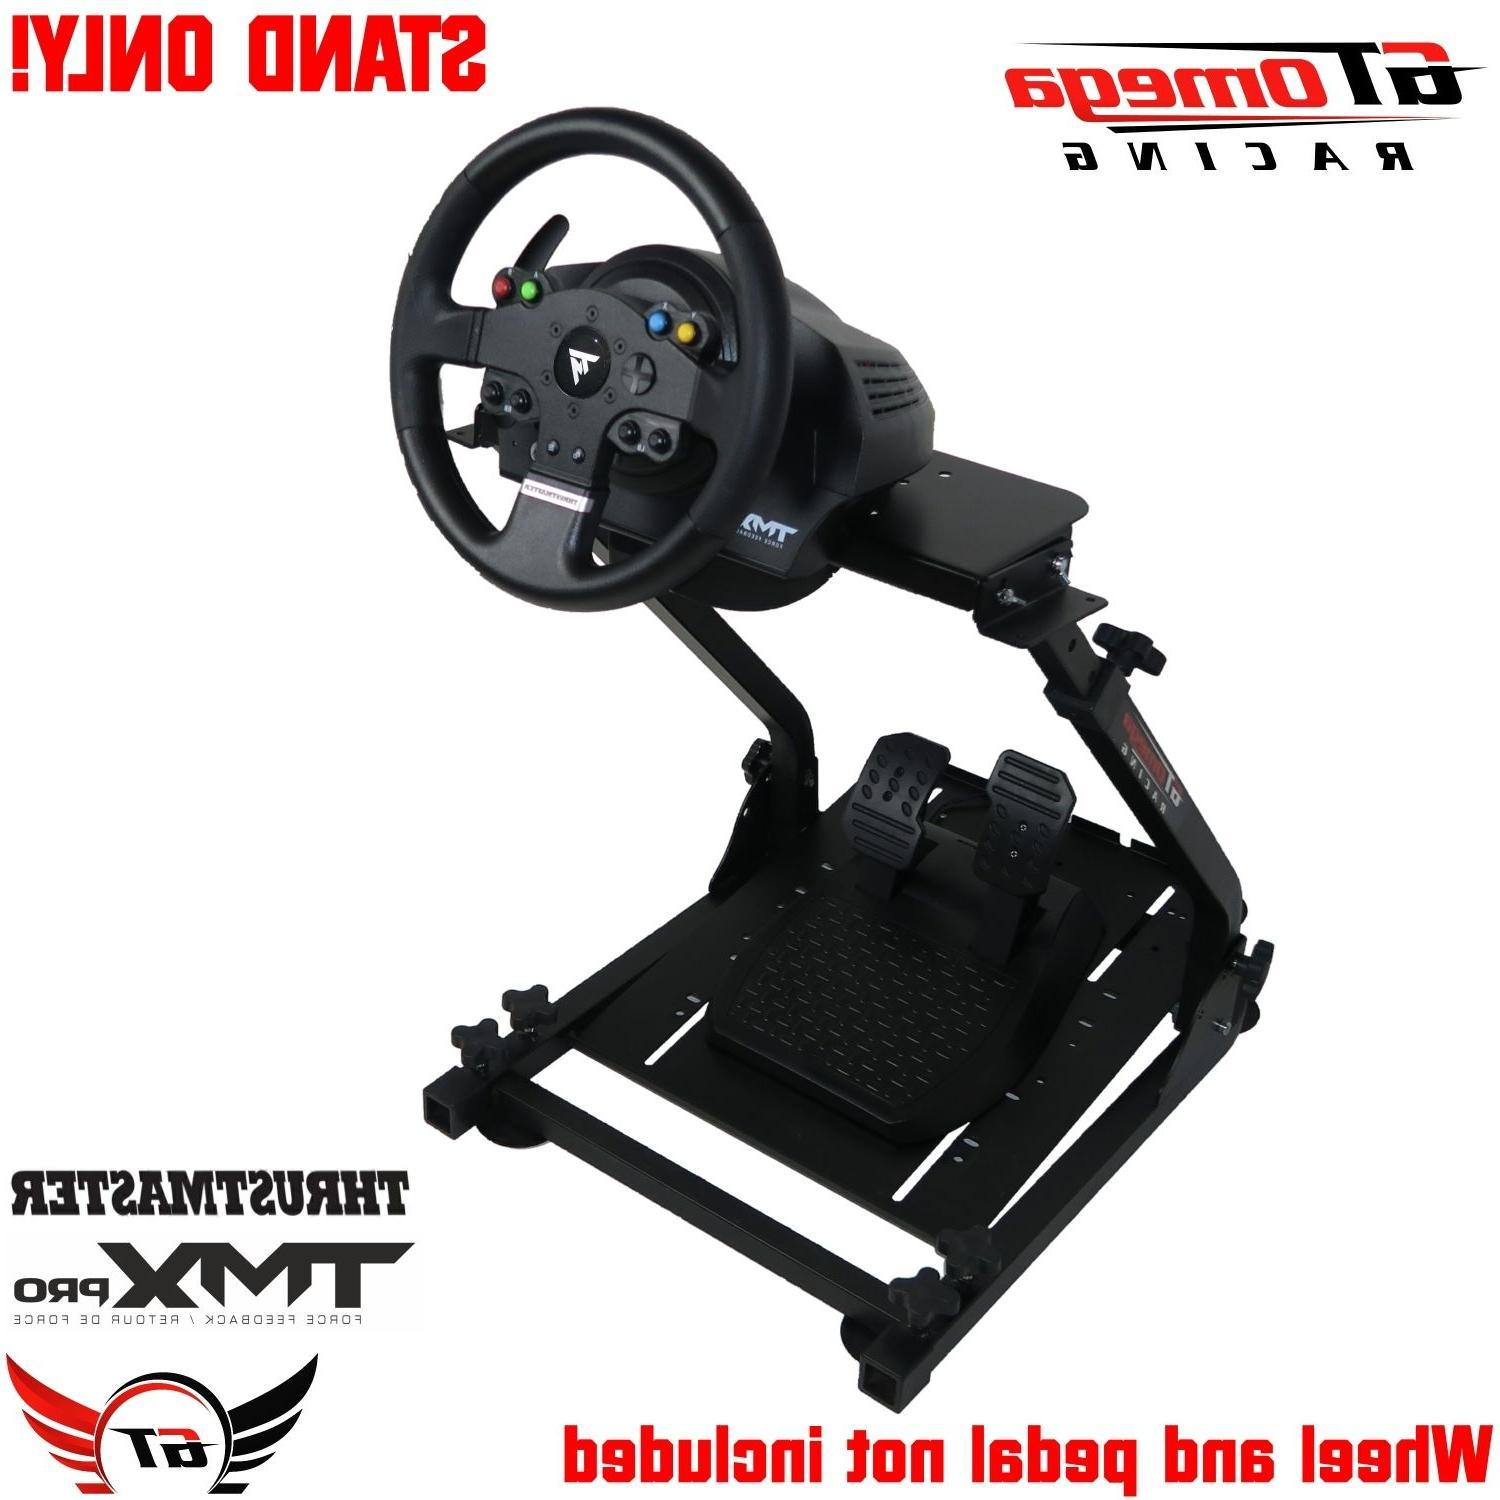 Gt Omega Steering Wheel Stand Pro For Thrustmaster Tmx Racin